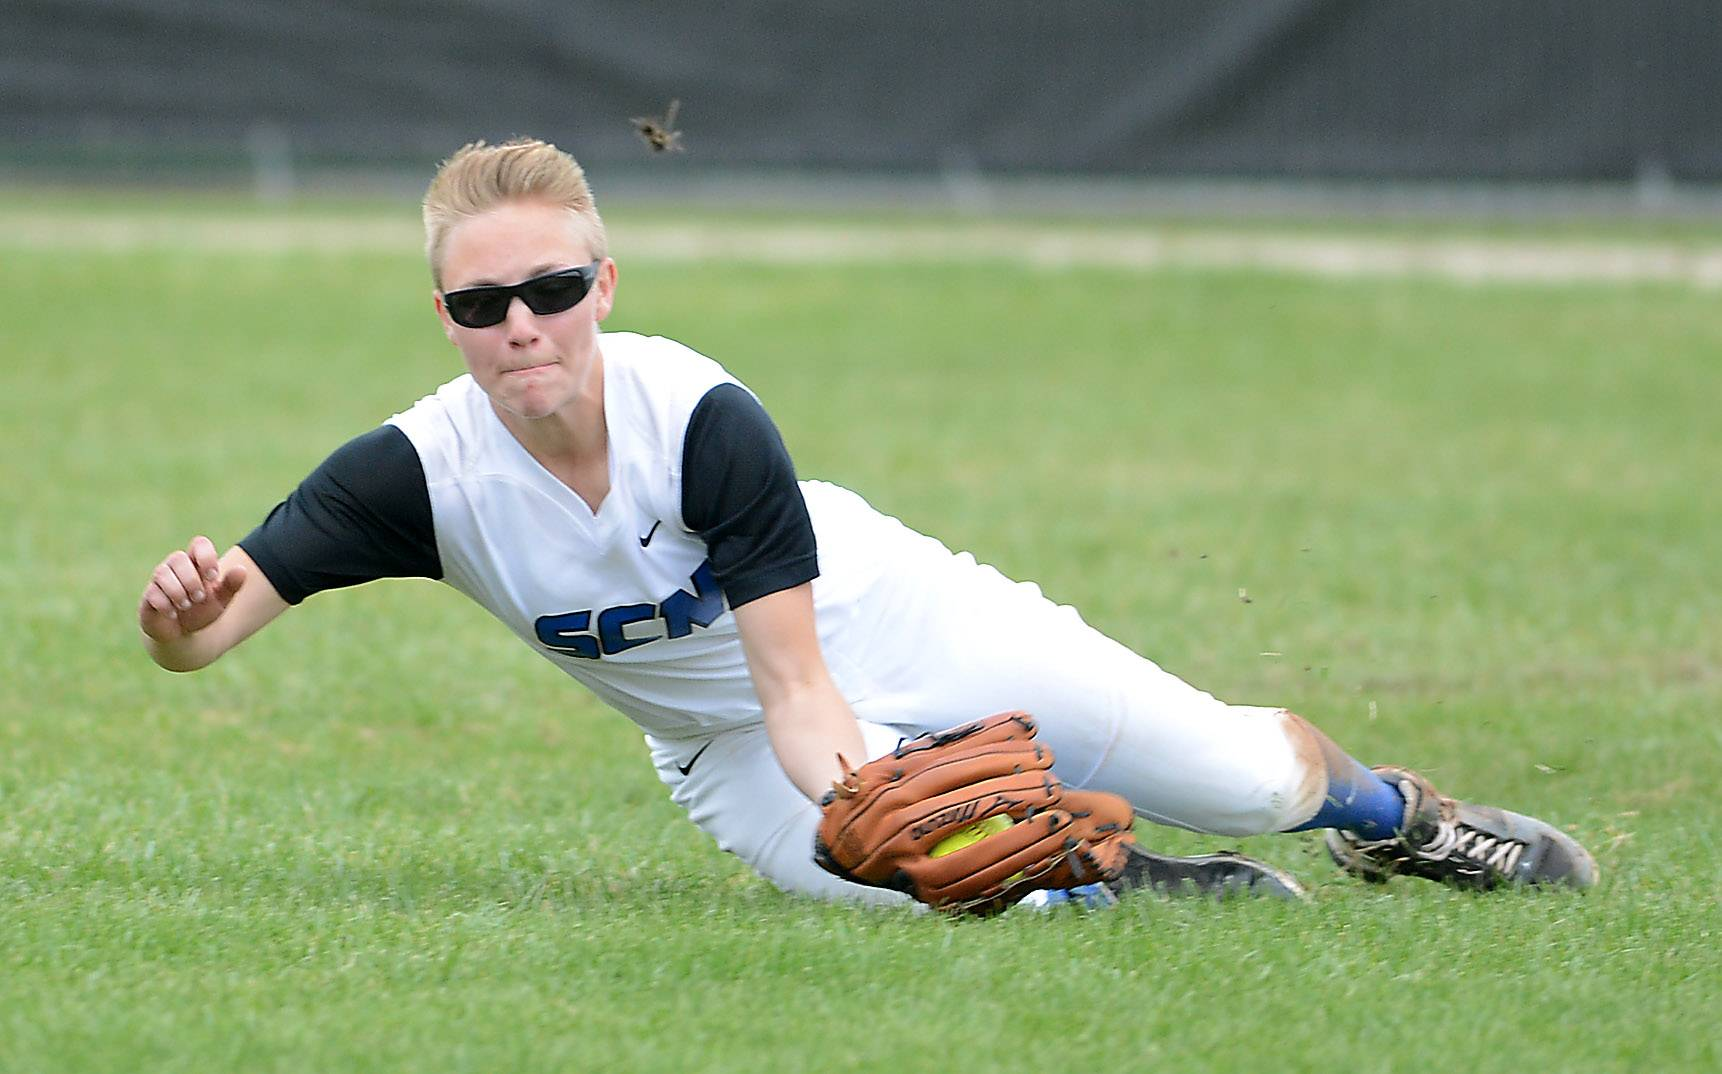 St. Charles North's Andrea Beal makes a sliding, diving catch during Tuesday's game in St. Charles.